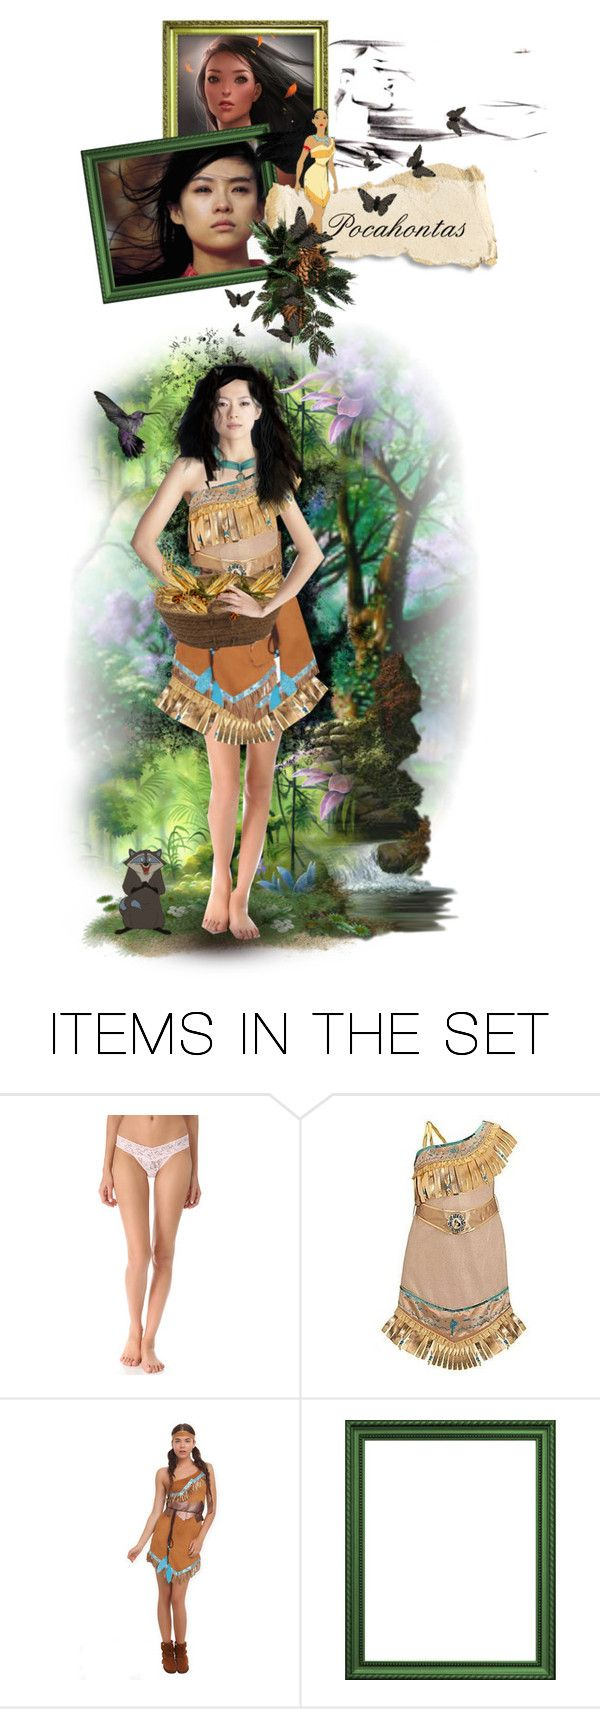 """""""Pocahontas"""" by chomiczynka ❤ liked on Polyvore featuring art"""